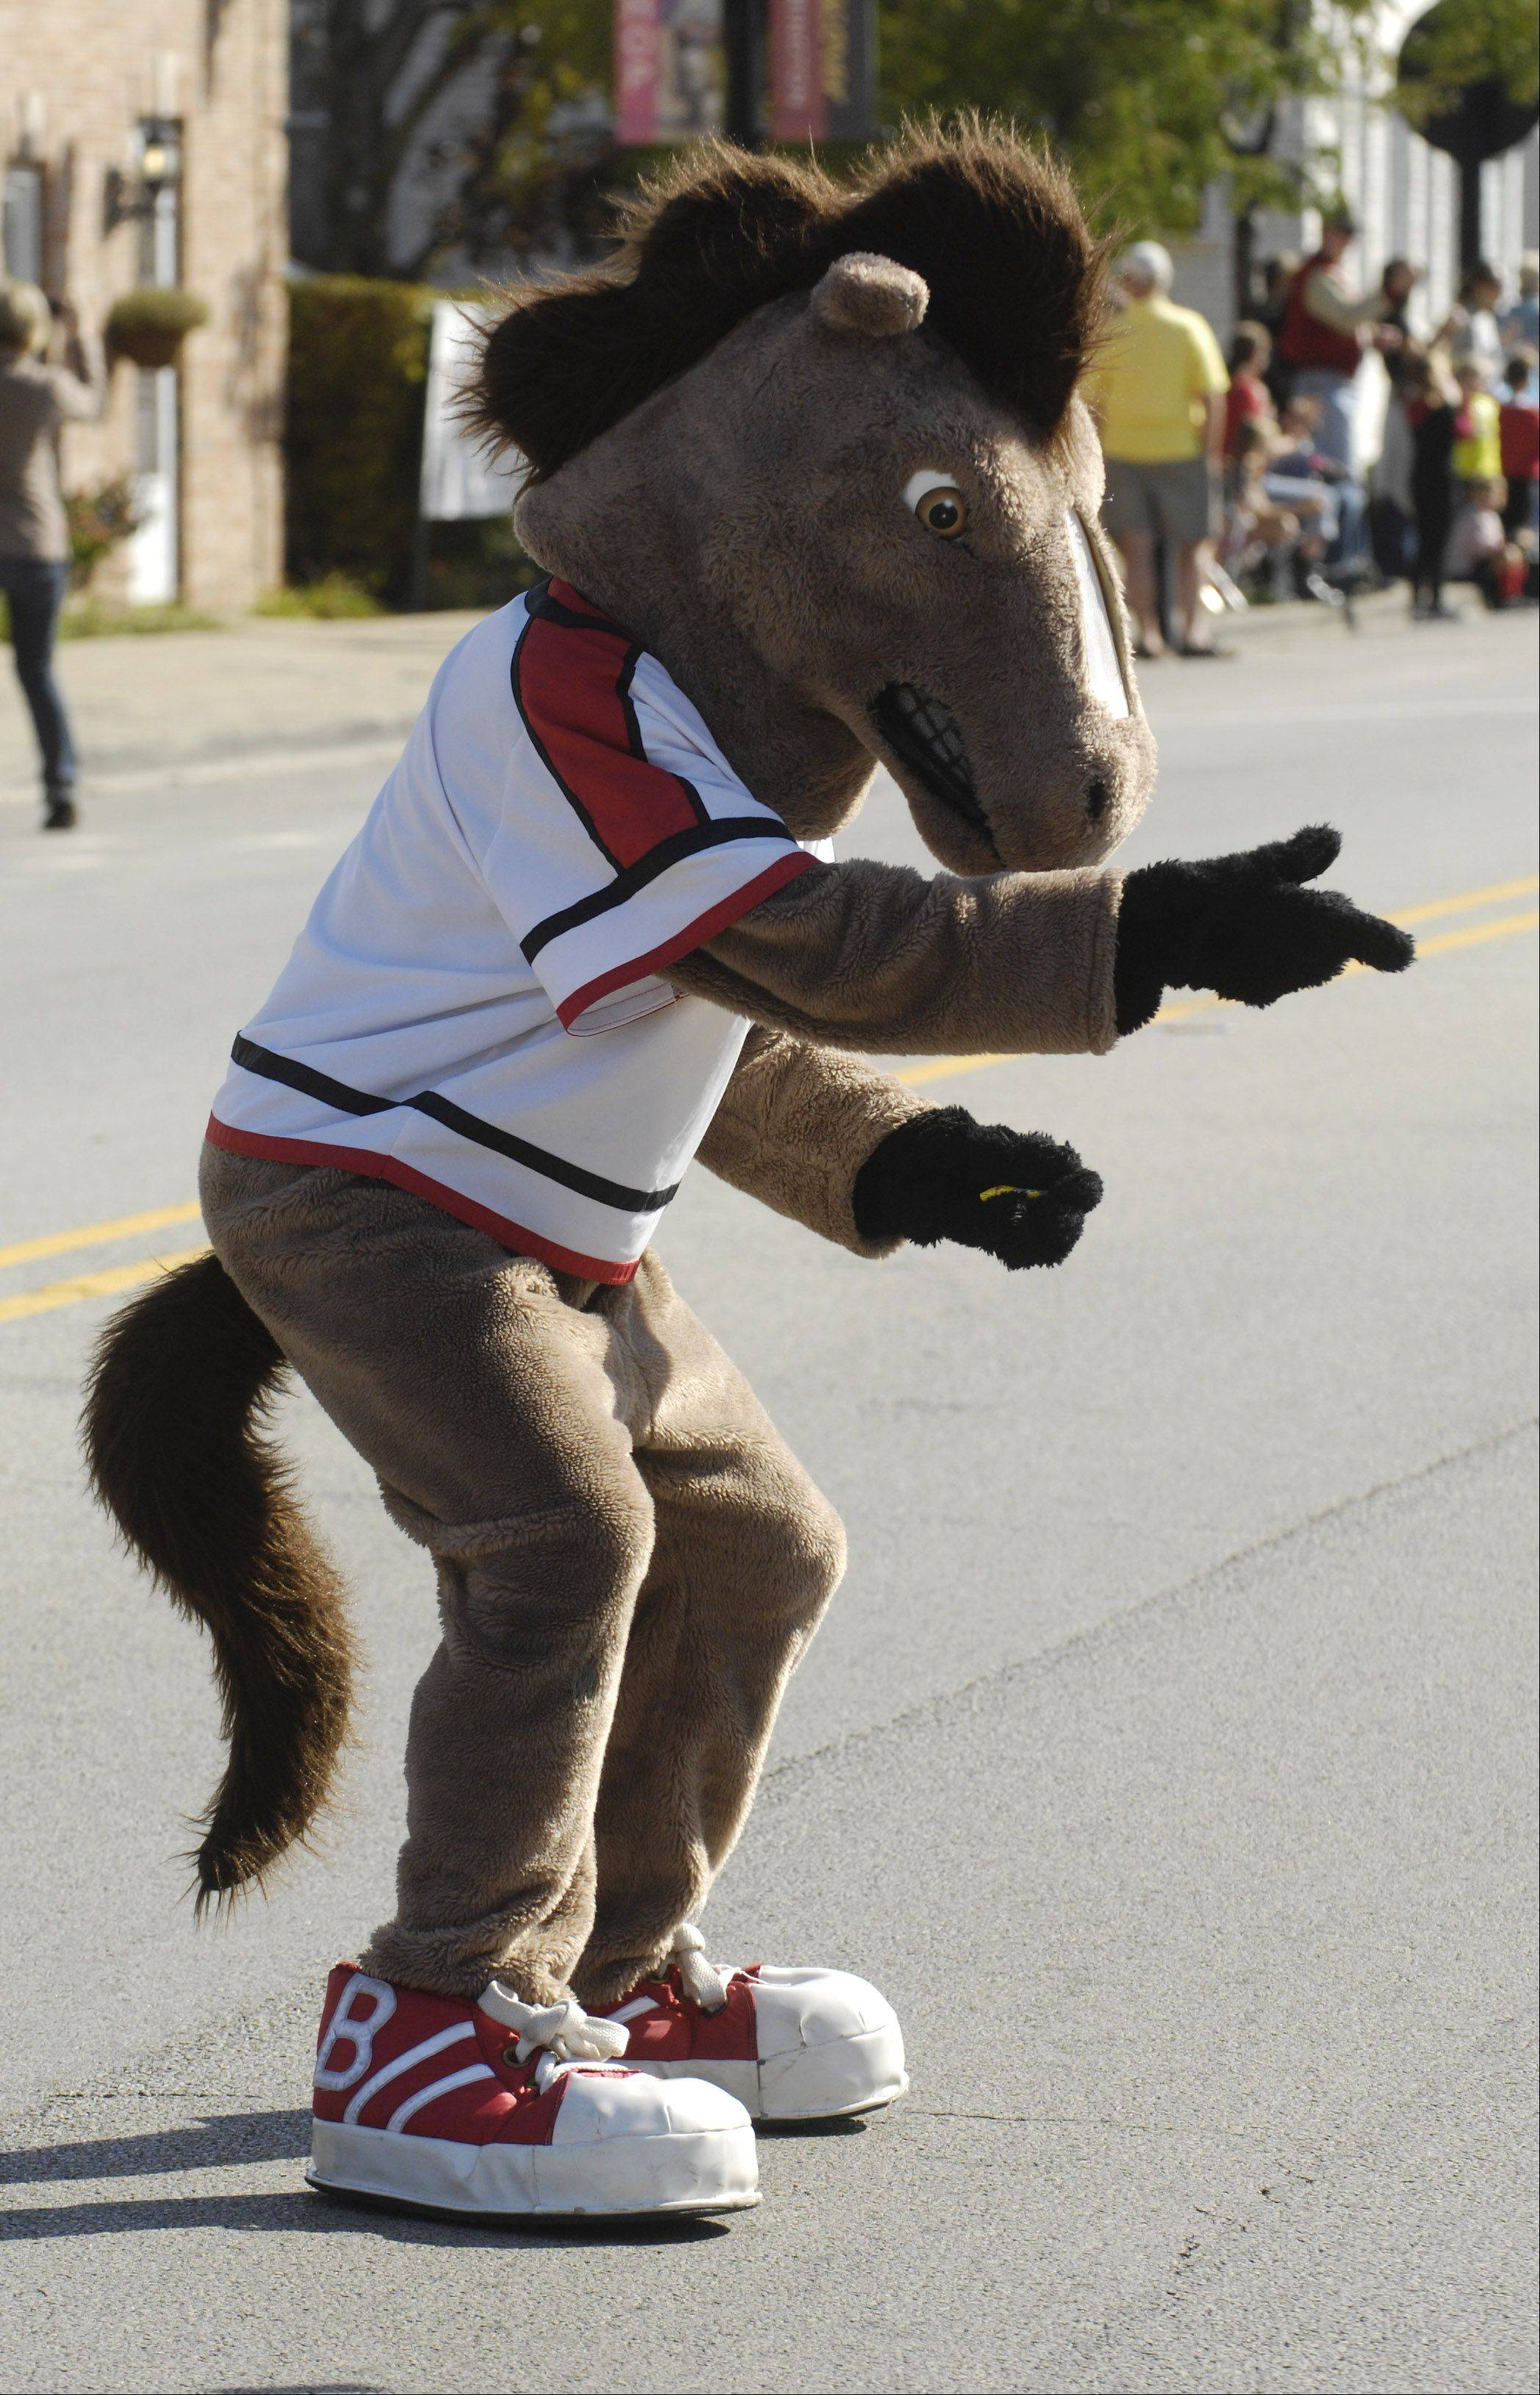 The Bronco mascot entertains children during the Barrington High School Homecoming parade.